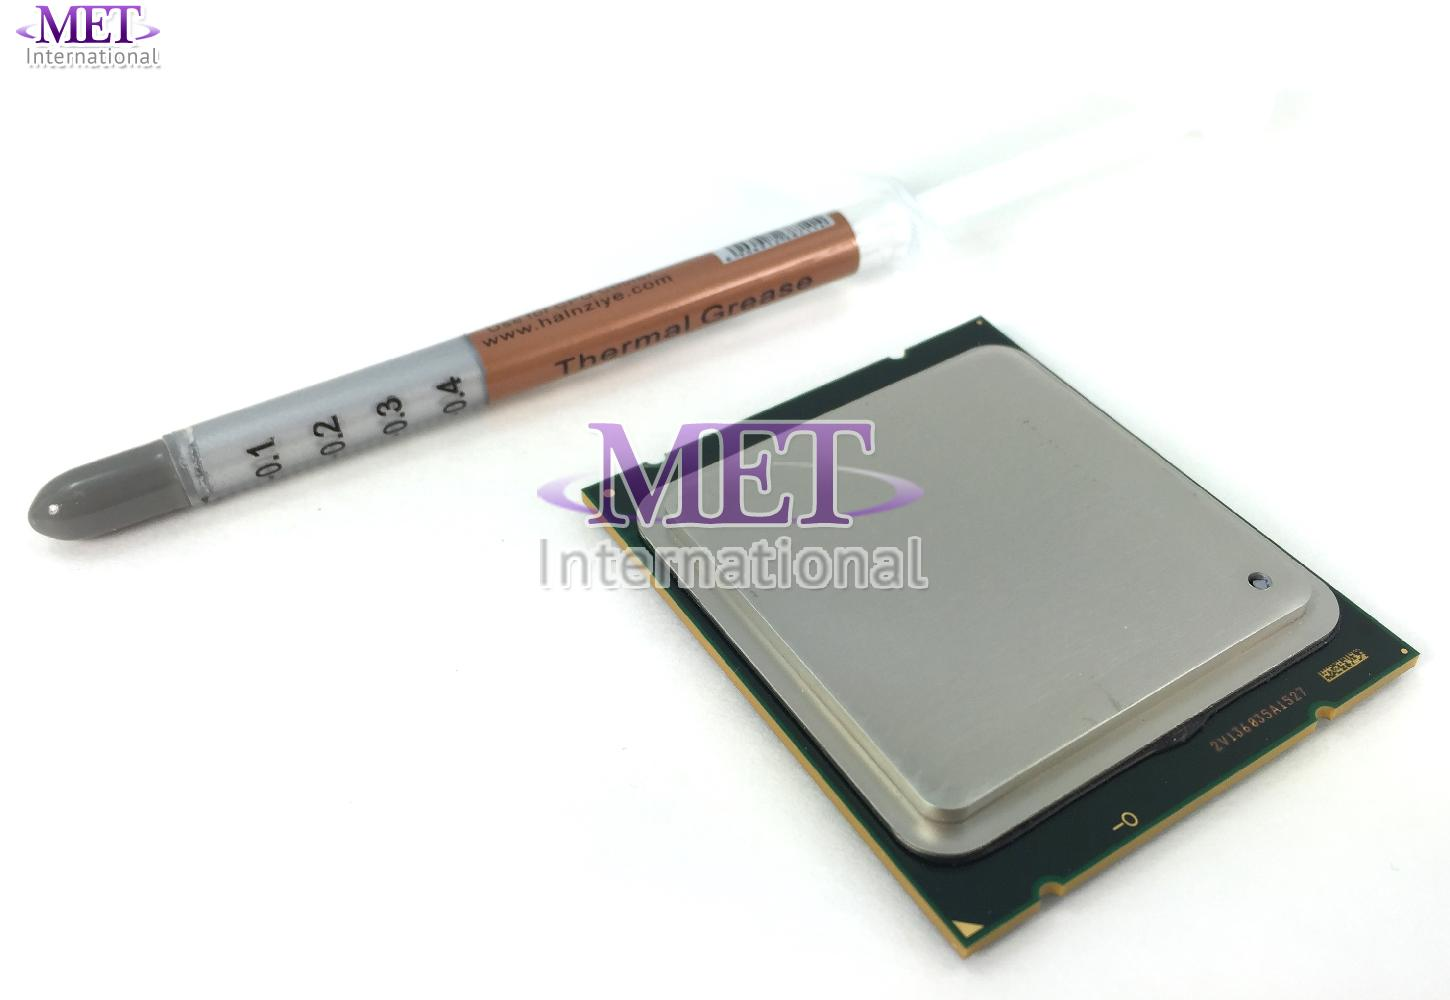 AMD Opteron 8439 Se 2.8Ghz Six Core Processor (0S8439YDS6DGN)